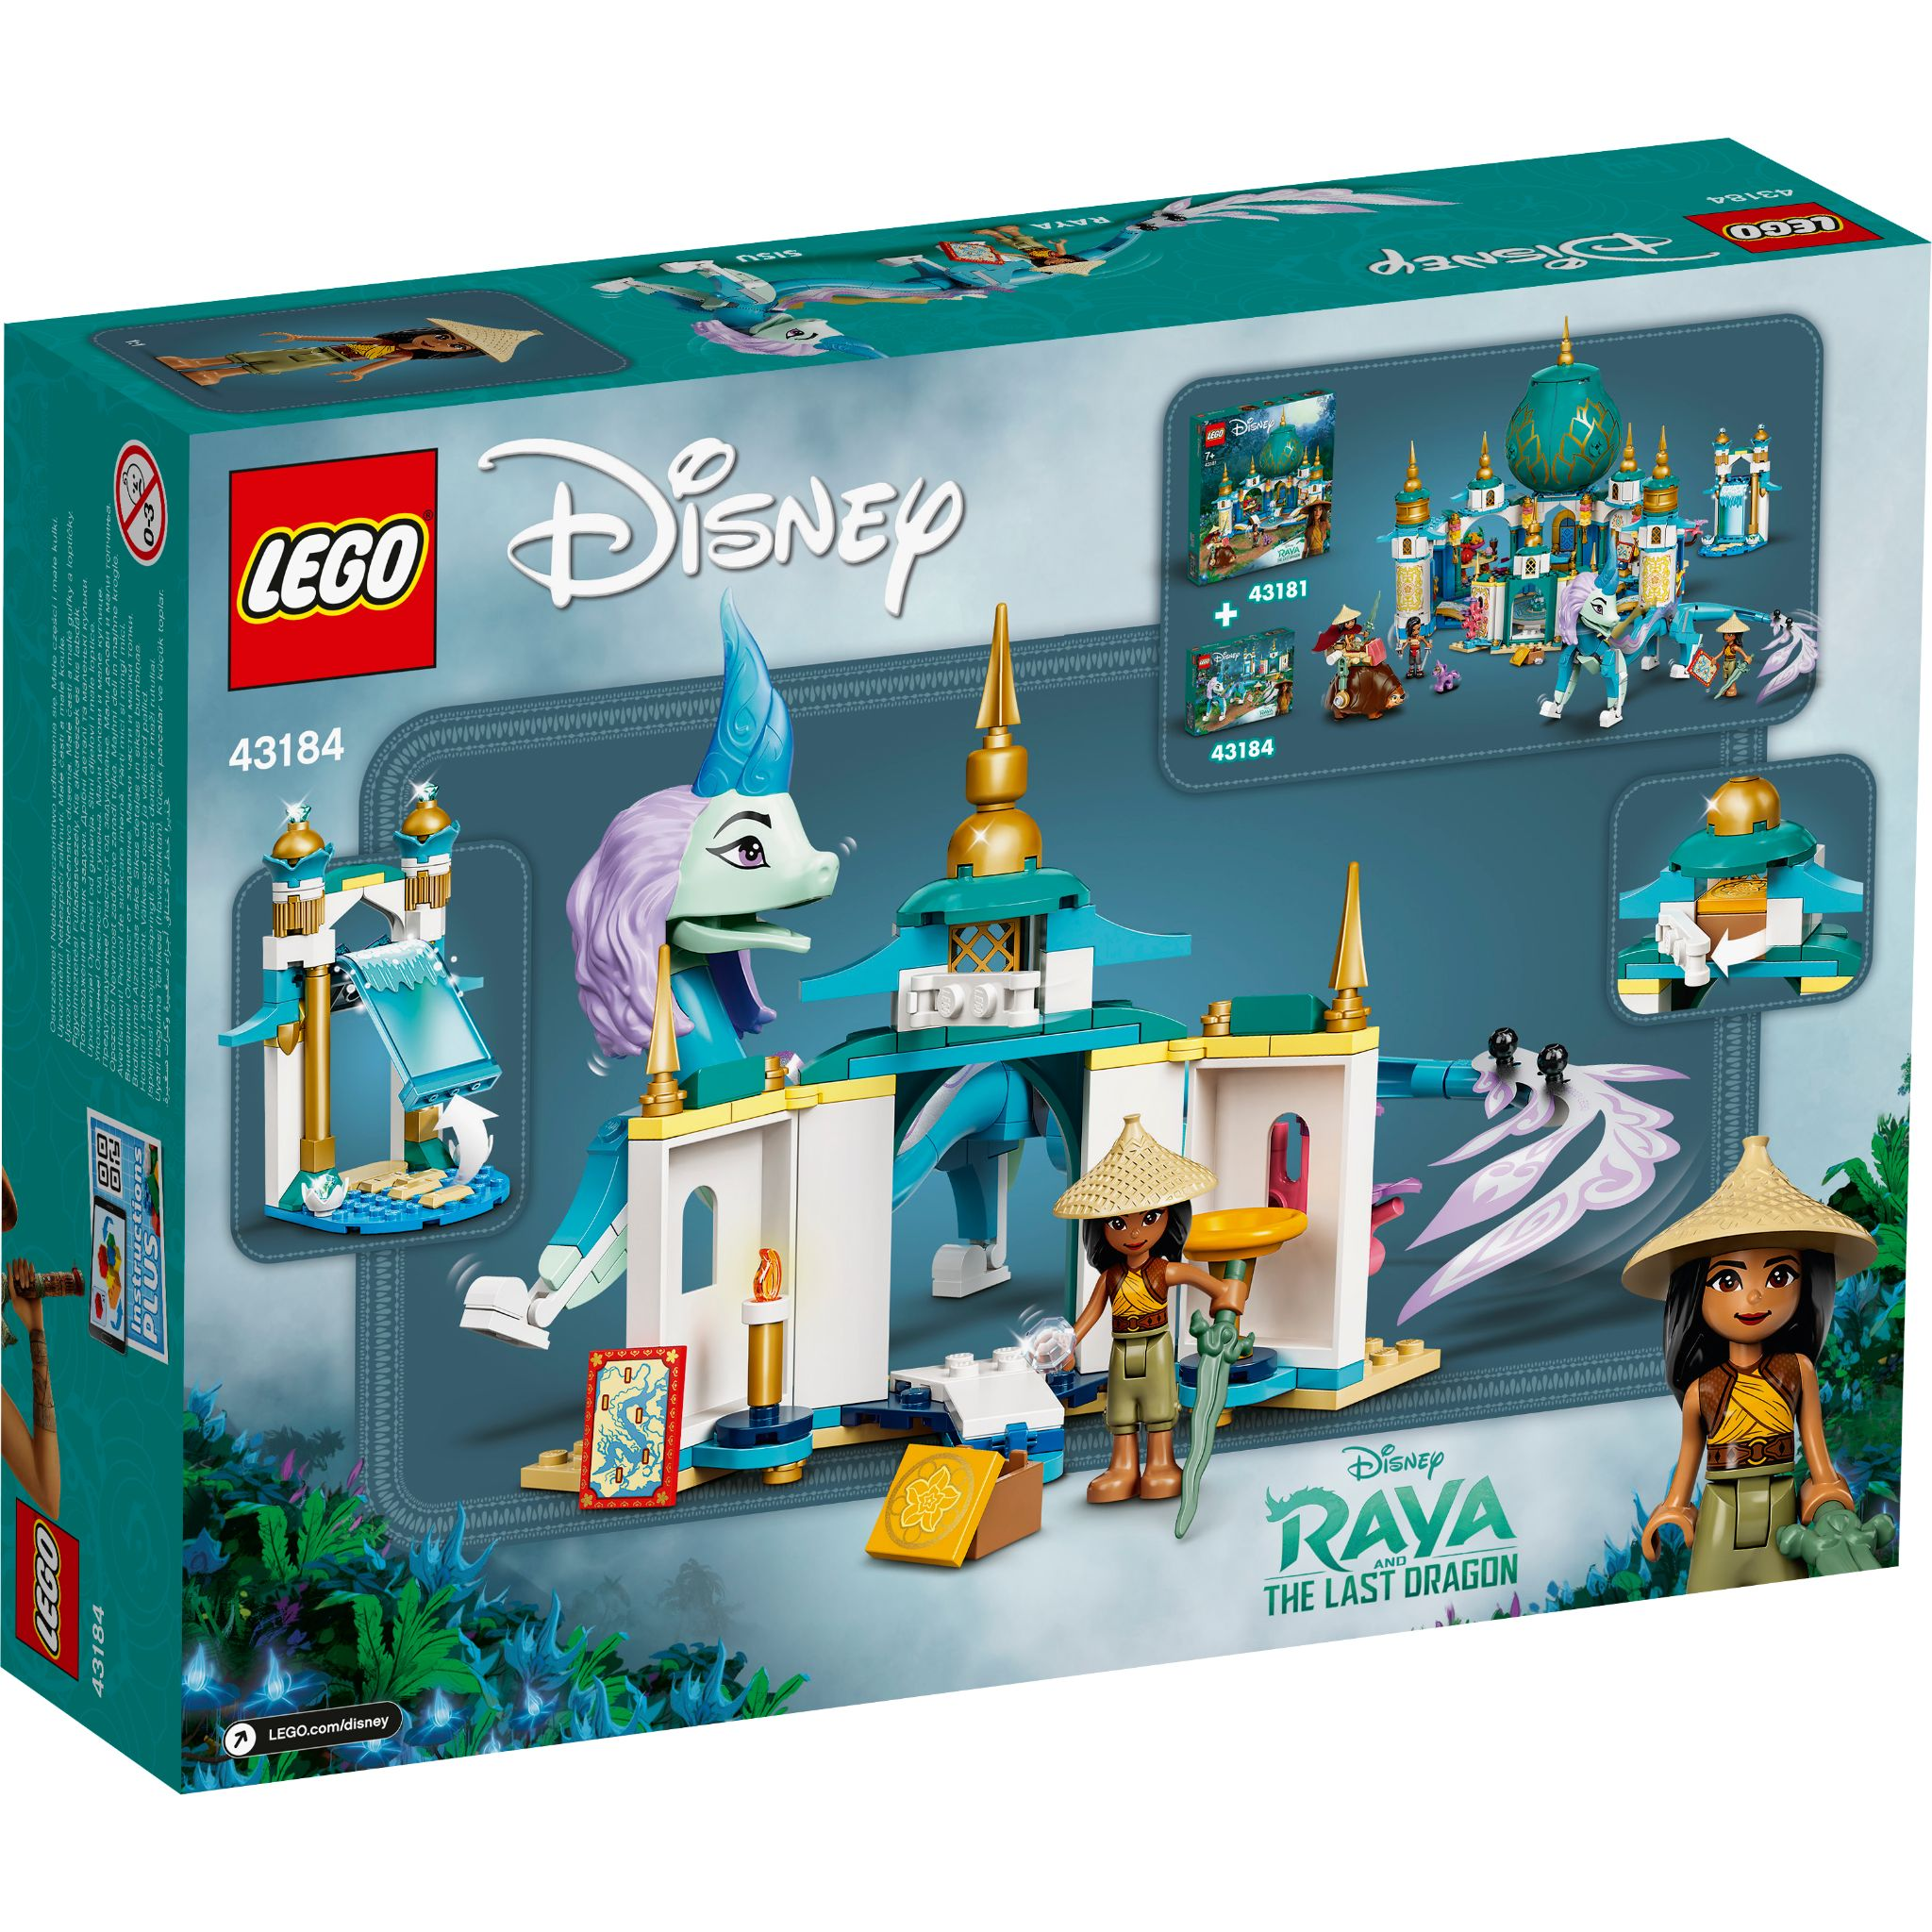 LEGO Disney Princess : Raya and Sisu Dragon 43184